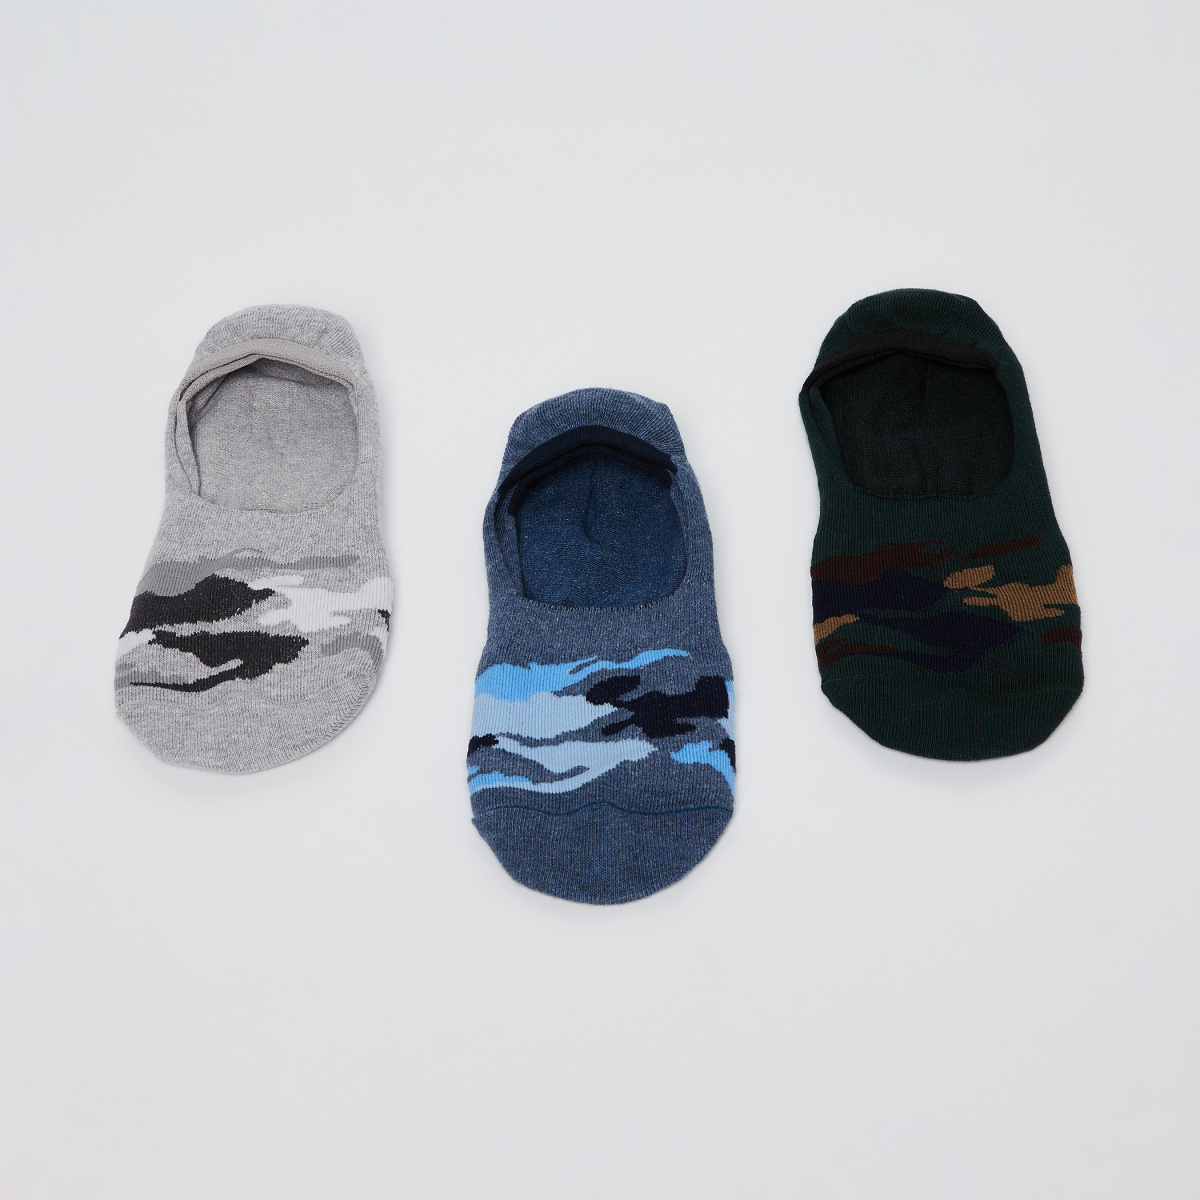 FORCA Camouflage Footie Socks- Pack of 2 Pairs